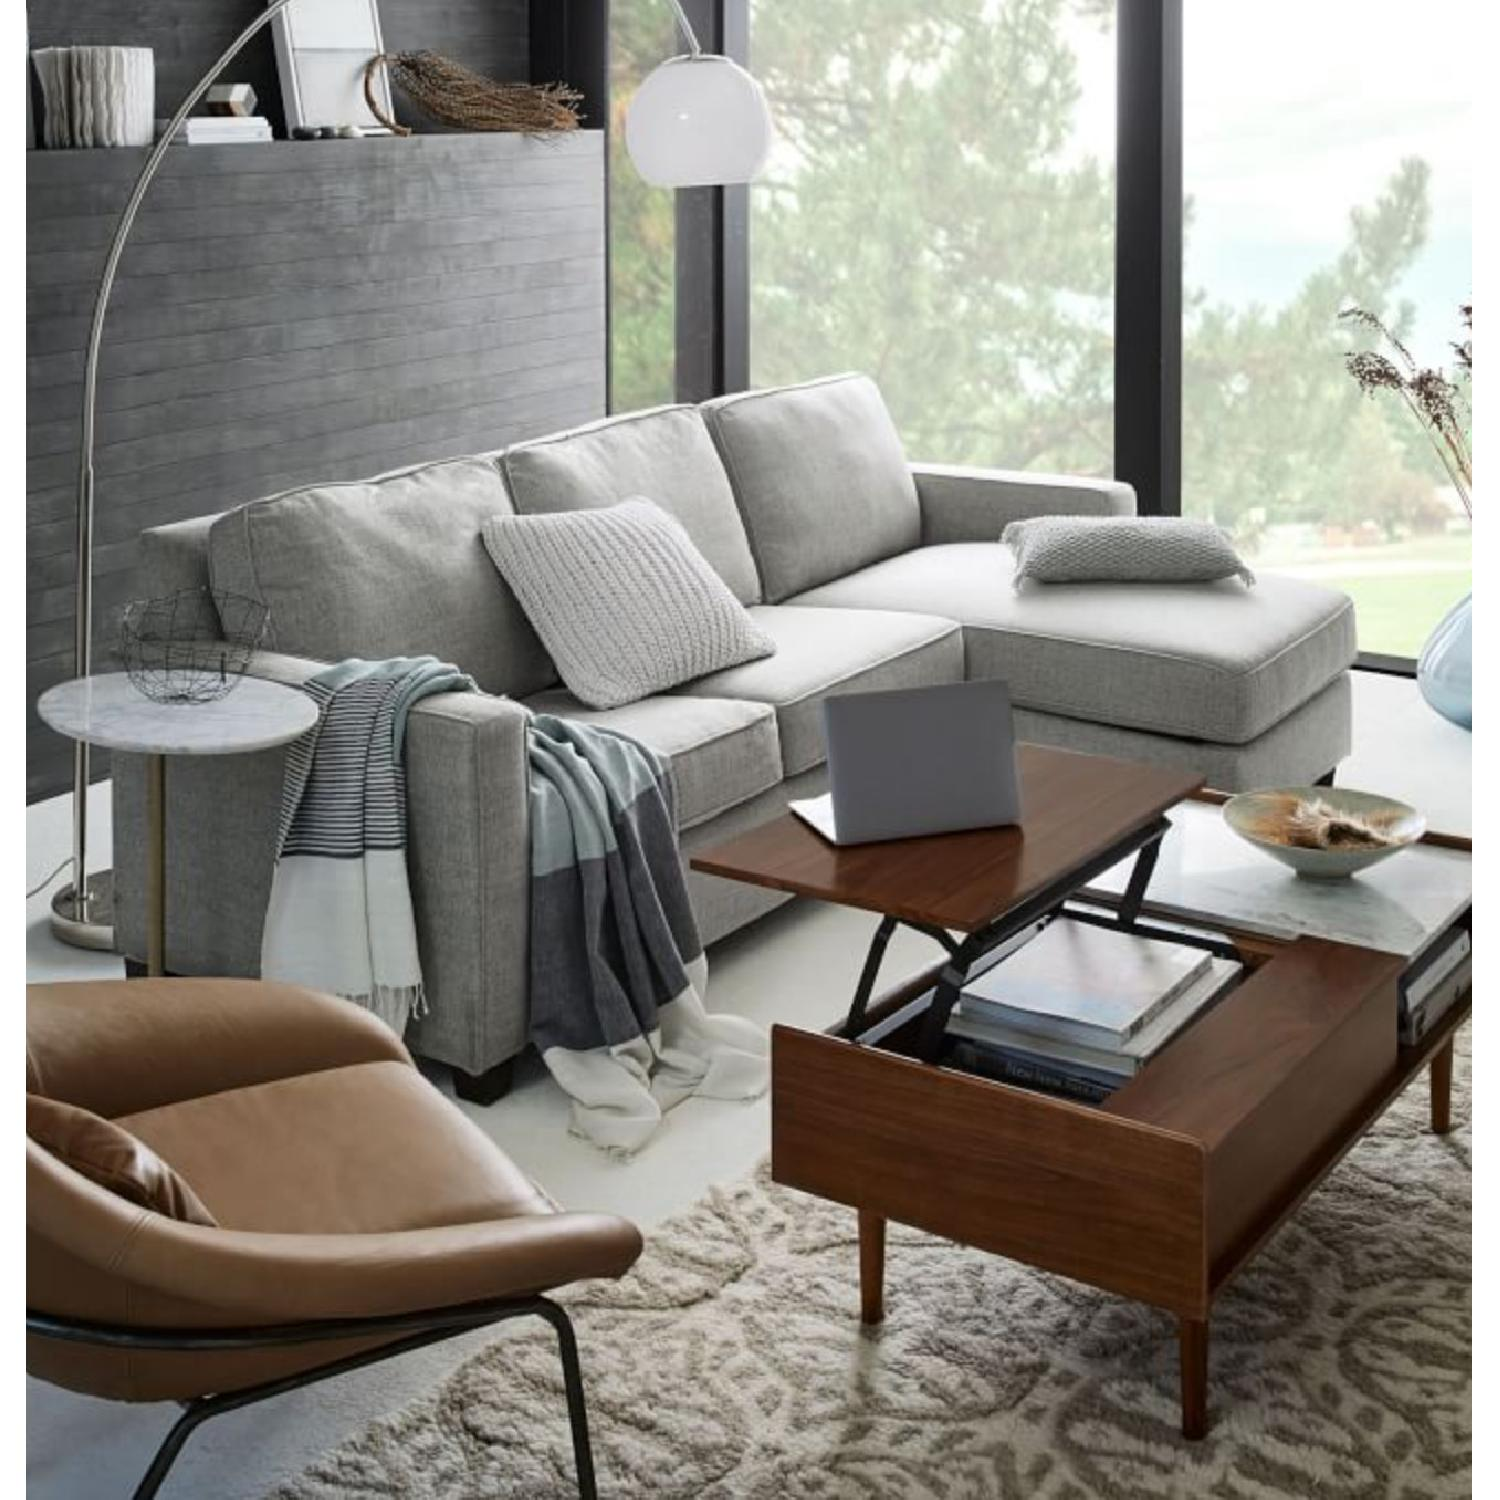 West Elm Henry 2-Piece Chaise Sectional Sofa - image-5